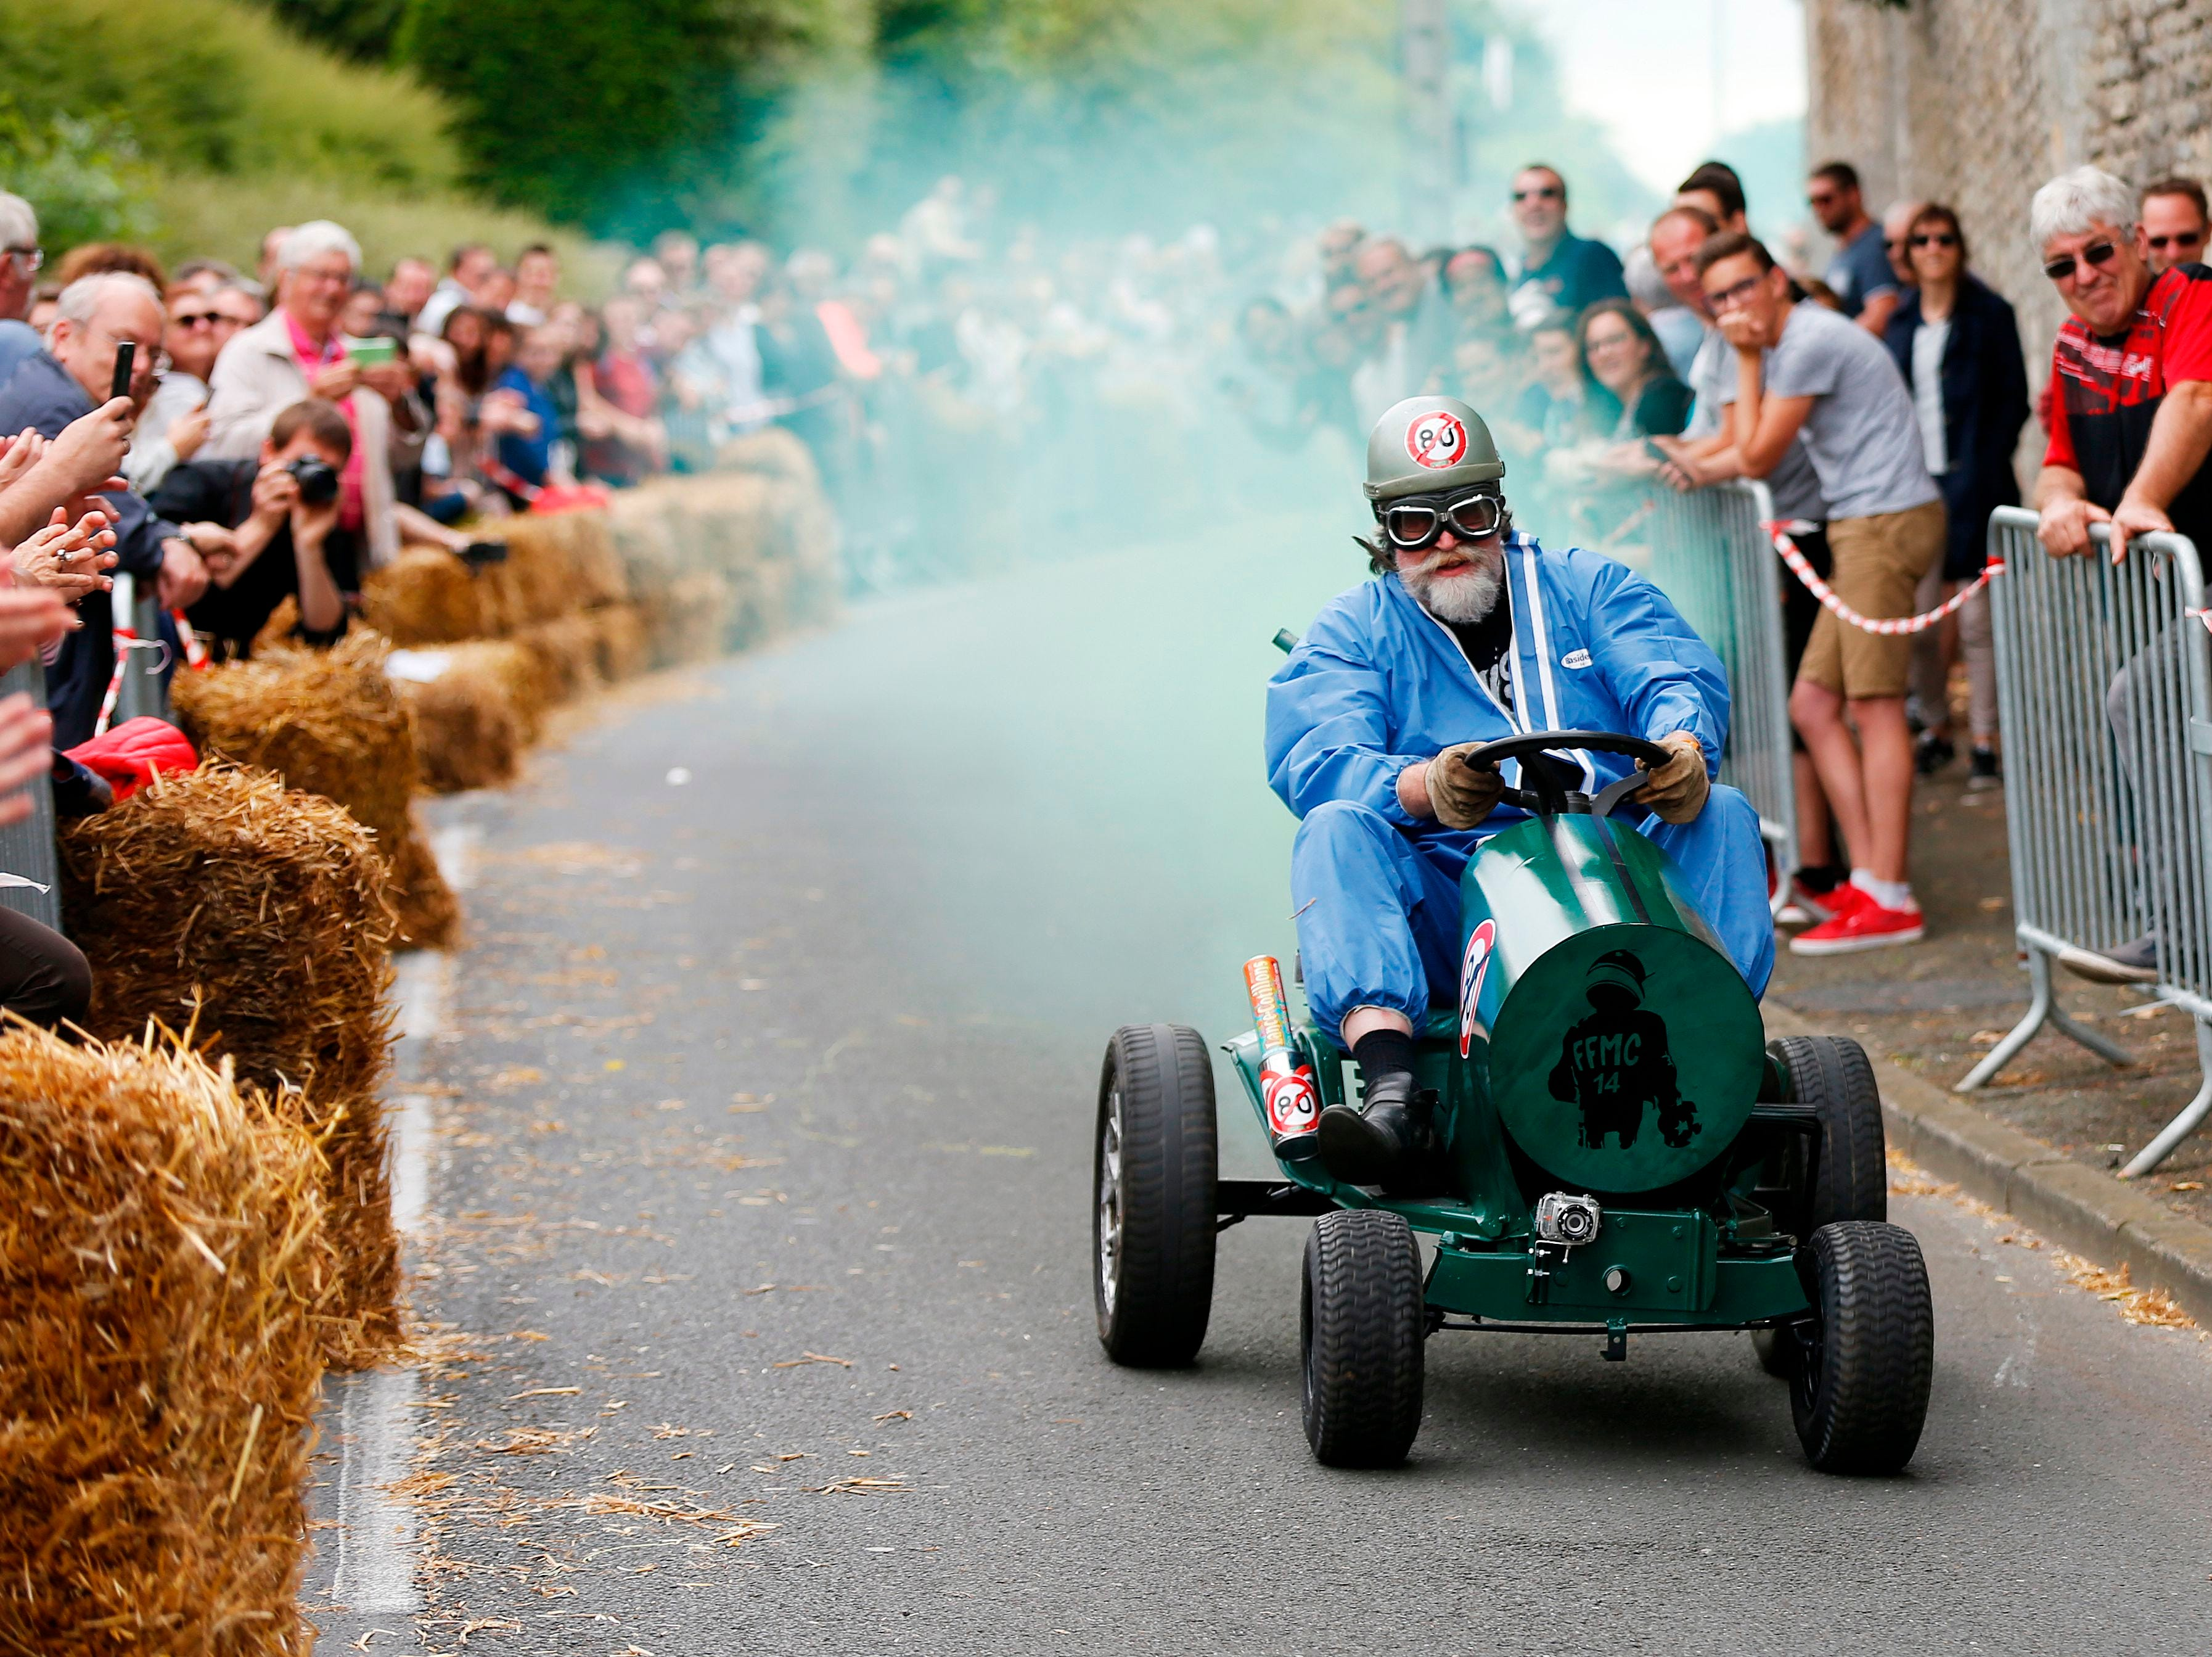 June 17, 2018: A participant competes during a soap box derby in Colombelles, France.